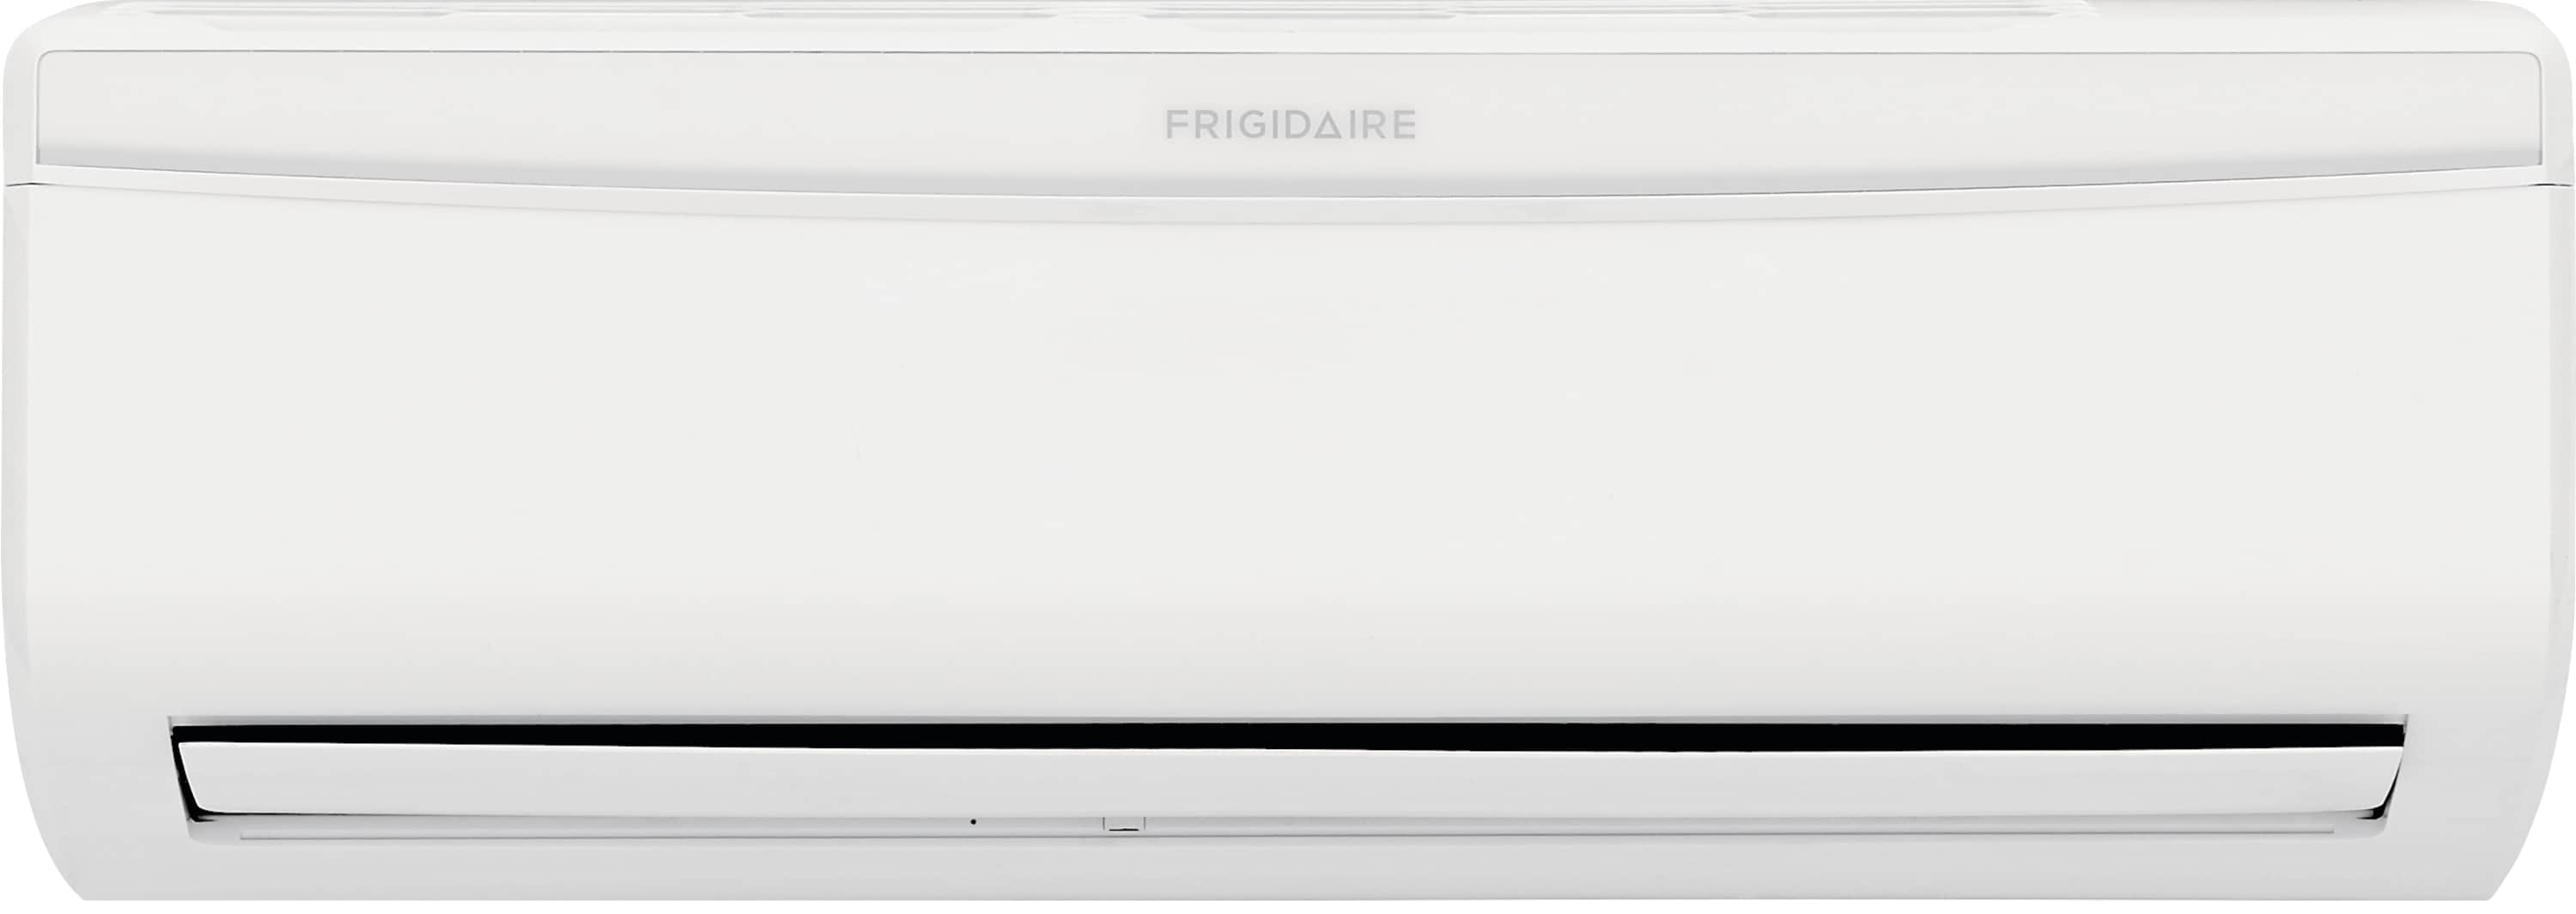 Ductless Split Air Conditioner Cool and Heat- 9,000 BTU, Heat Pump- 115V- Indoor unit